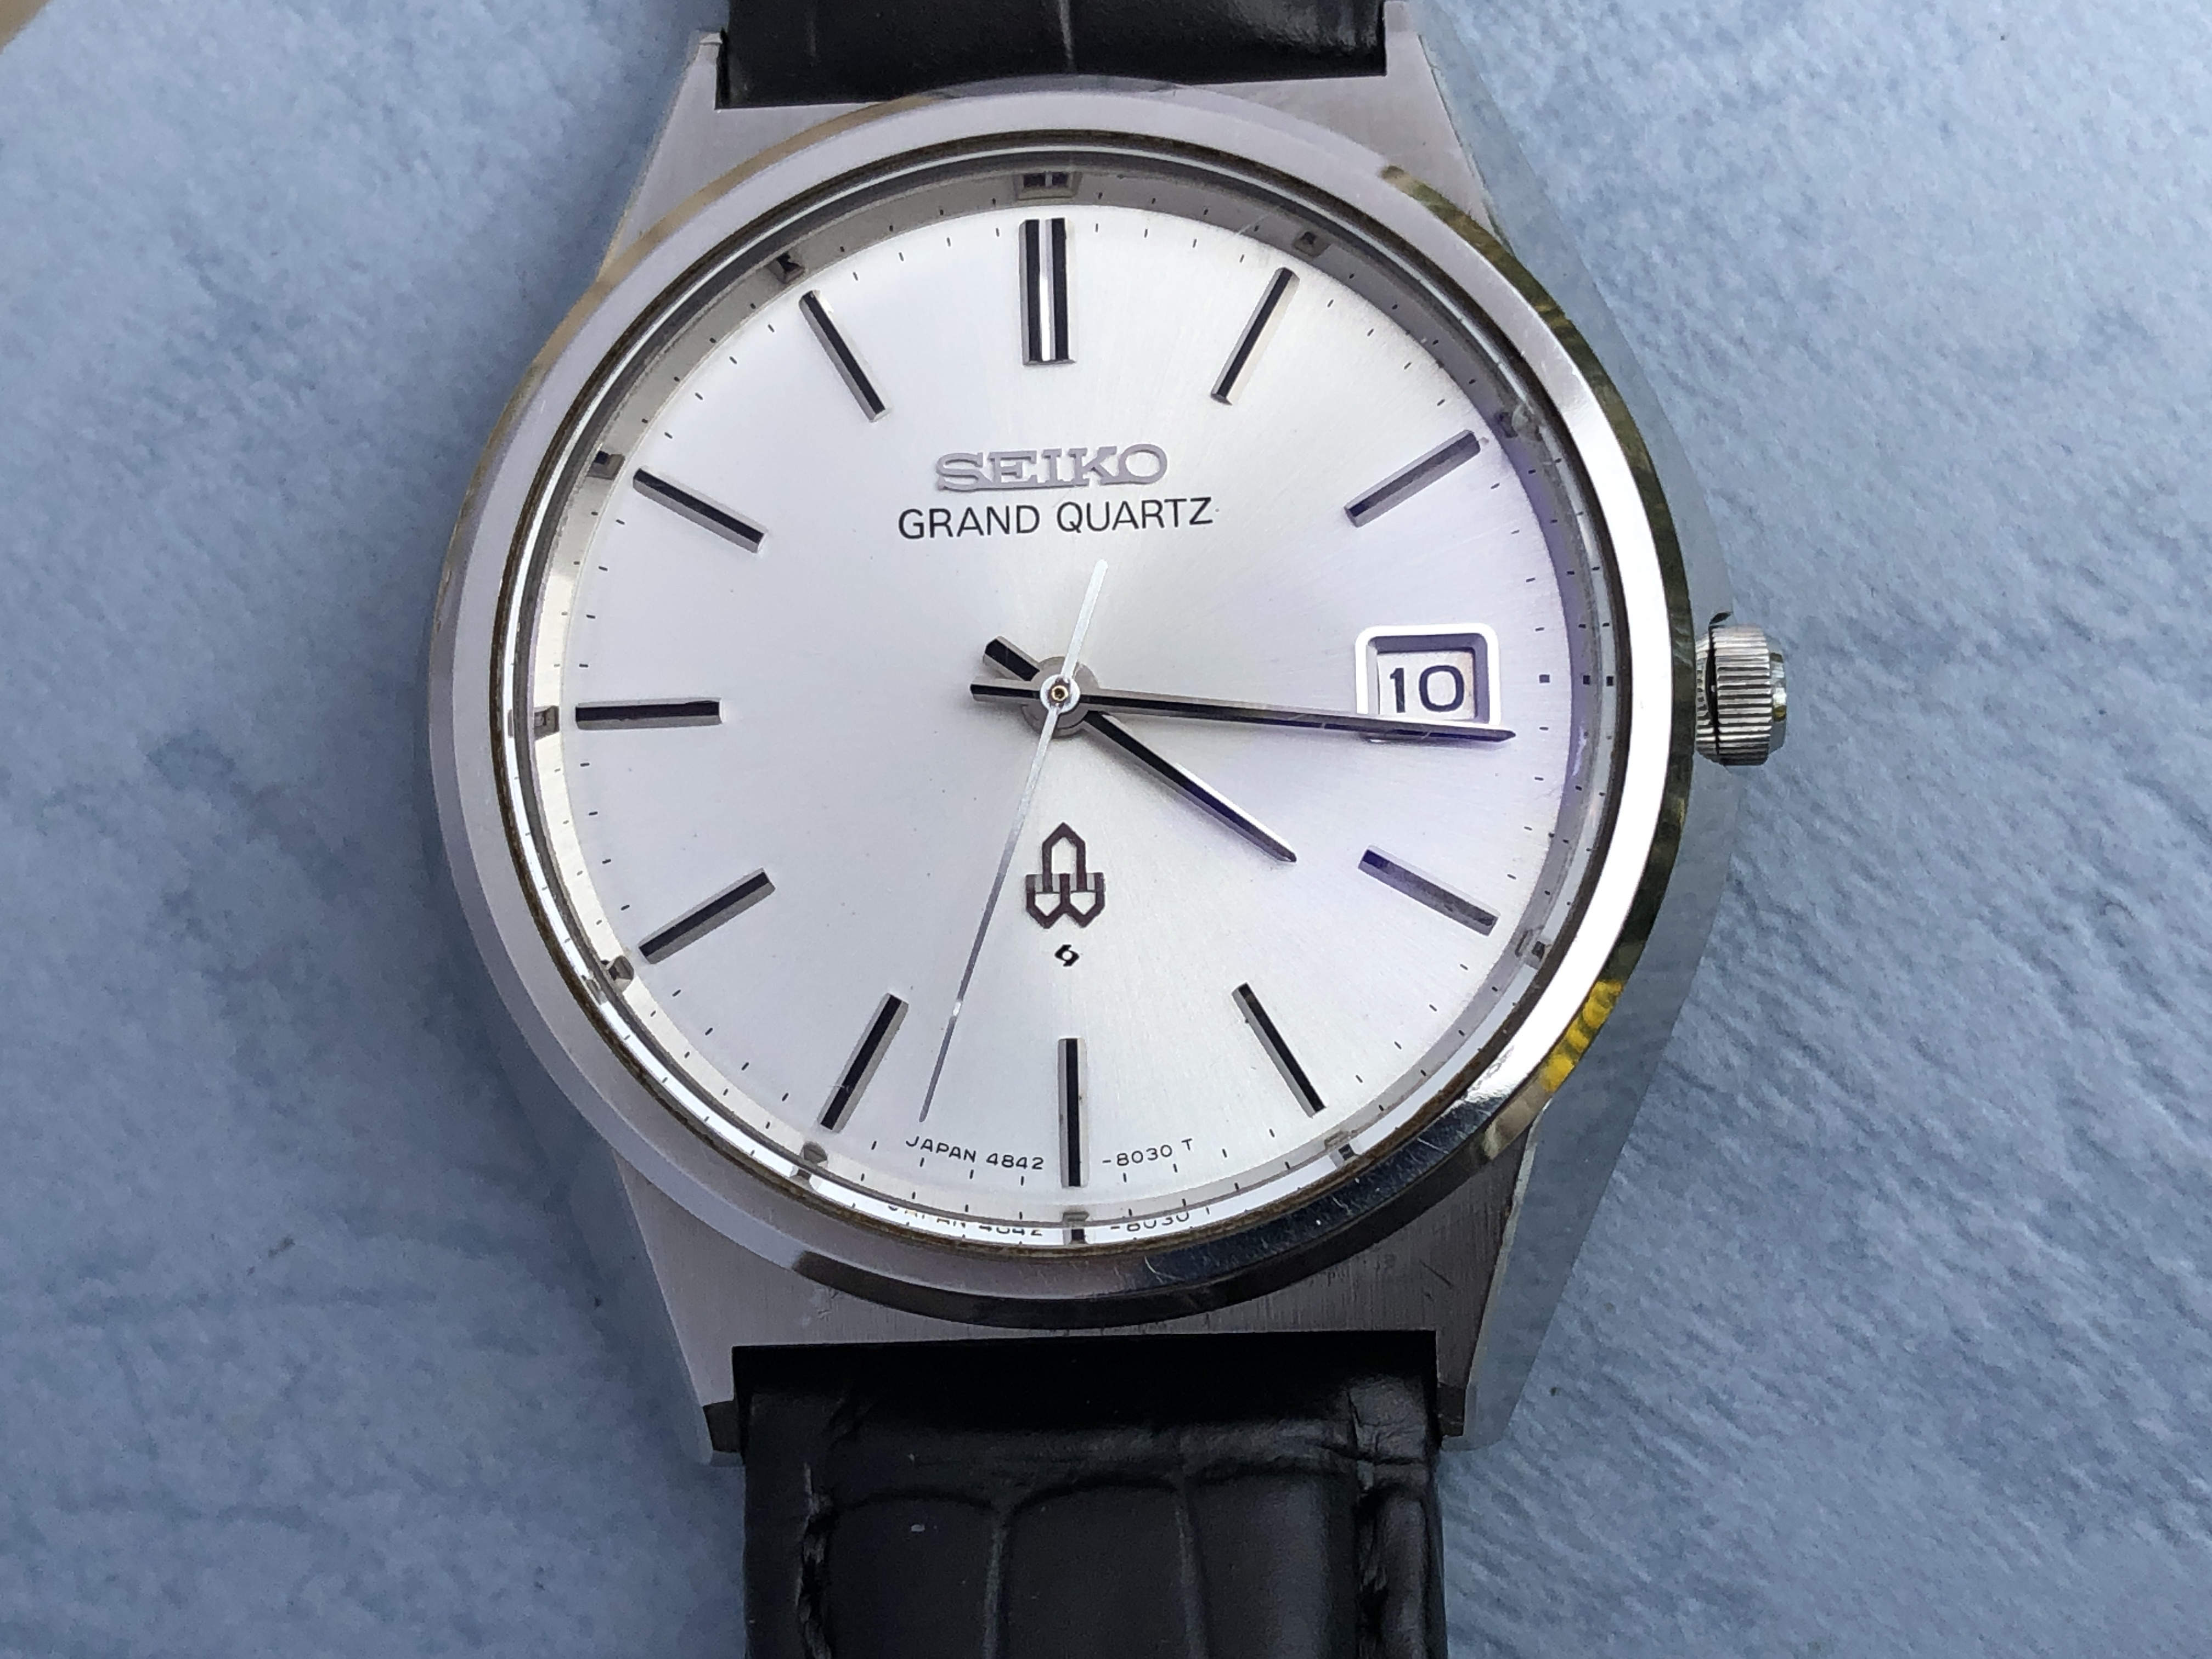 Seiko Grand Quartz 4842-8040 (sold)